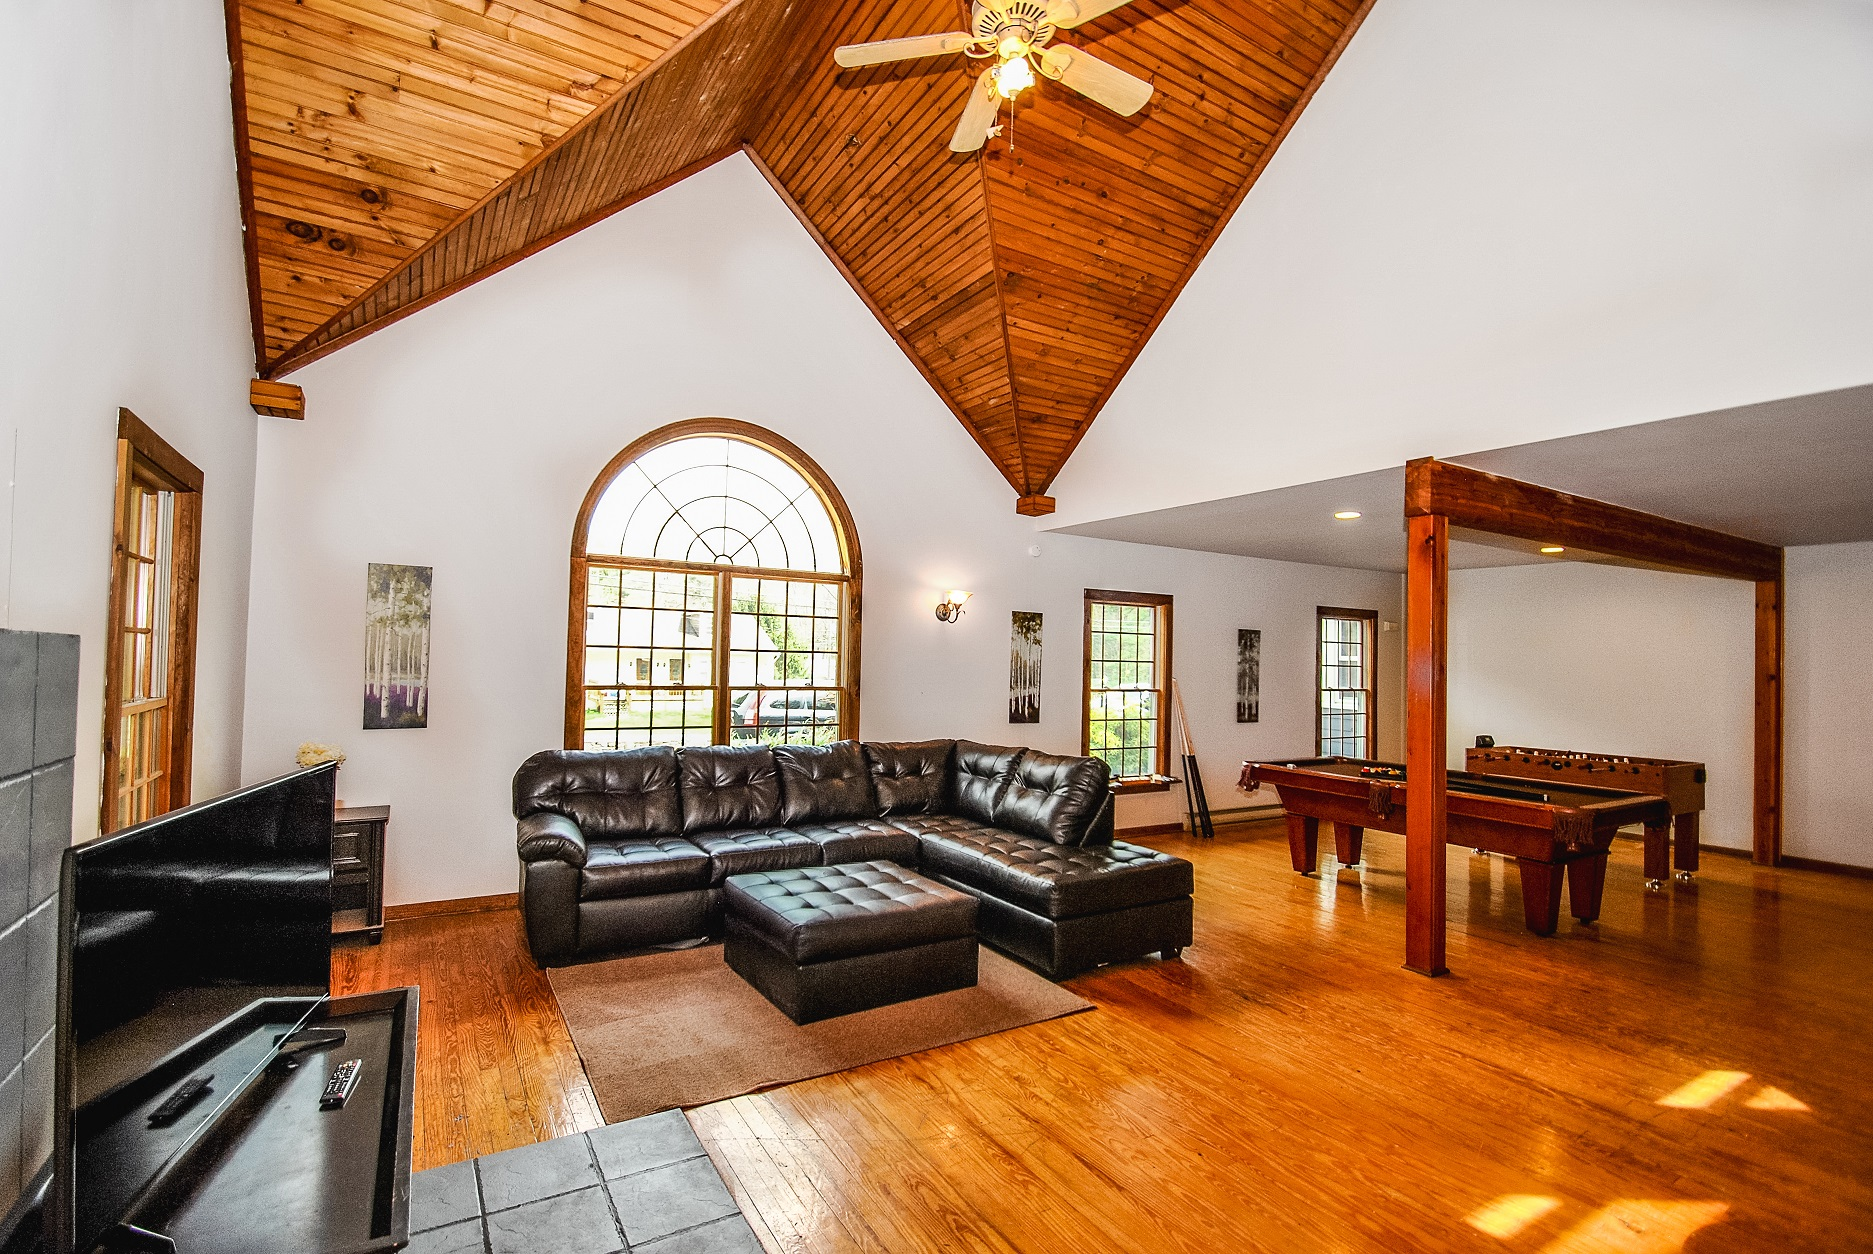 Sleeps 21: 8 Bedrooms (8 queen beds), 8.5 Baths, Pet Friendly House with Game Room with Roku w/Sling/Netflix, Gas Firepit on the side, BBQ Grill, Wood Fireplace in Living Area and a Seperate Gas Fireplace in Great Room, Pool Table, Foosball Table and huge dining room table seats 12-14.